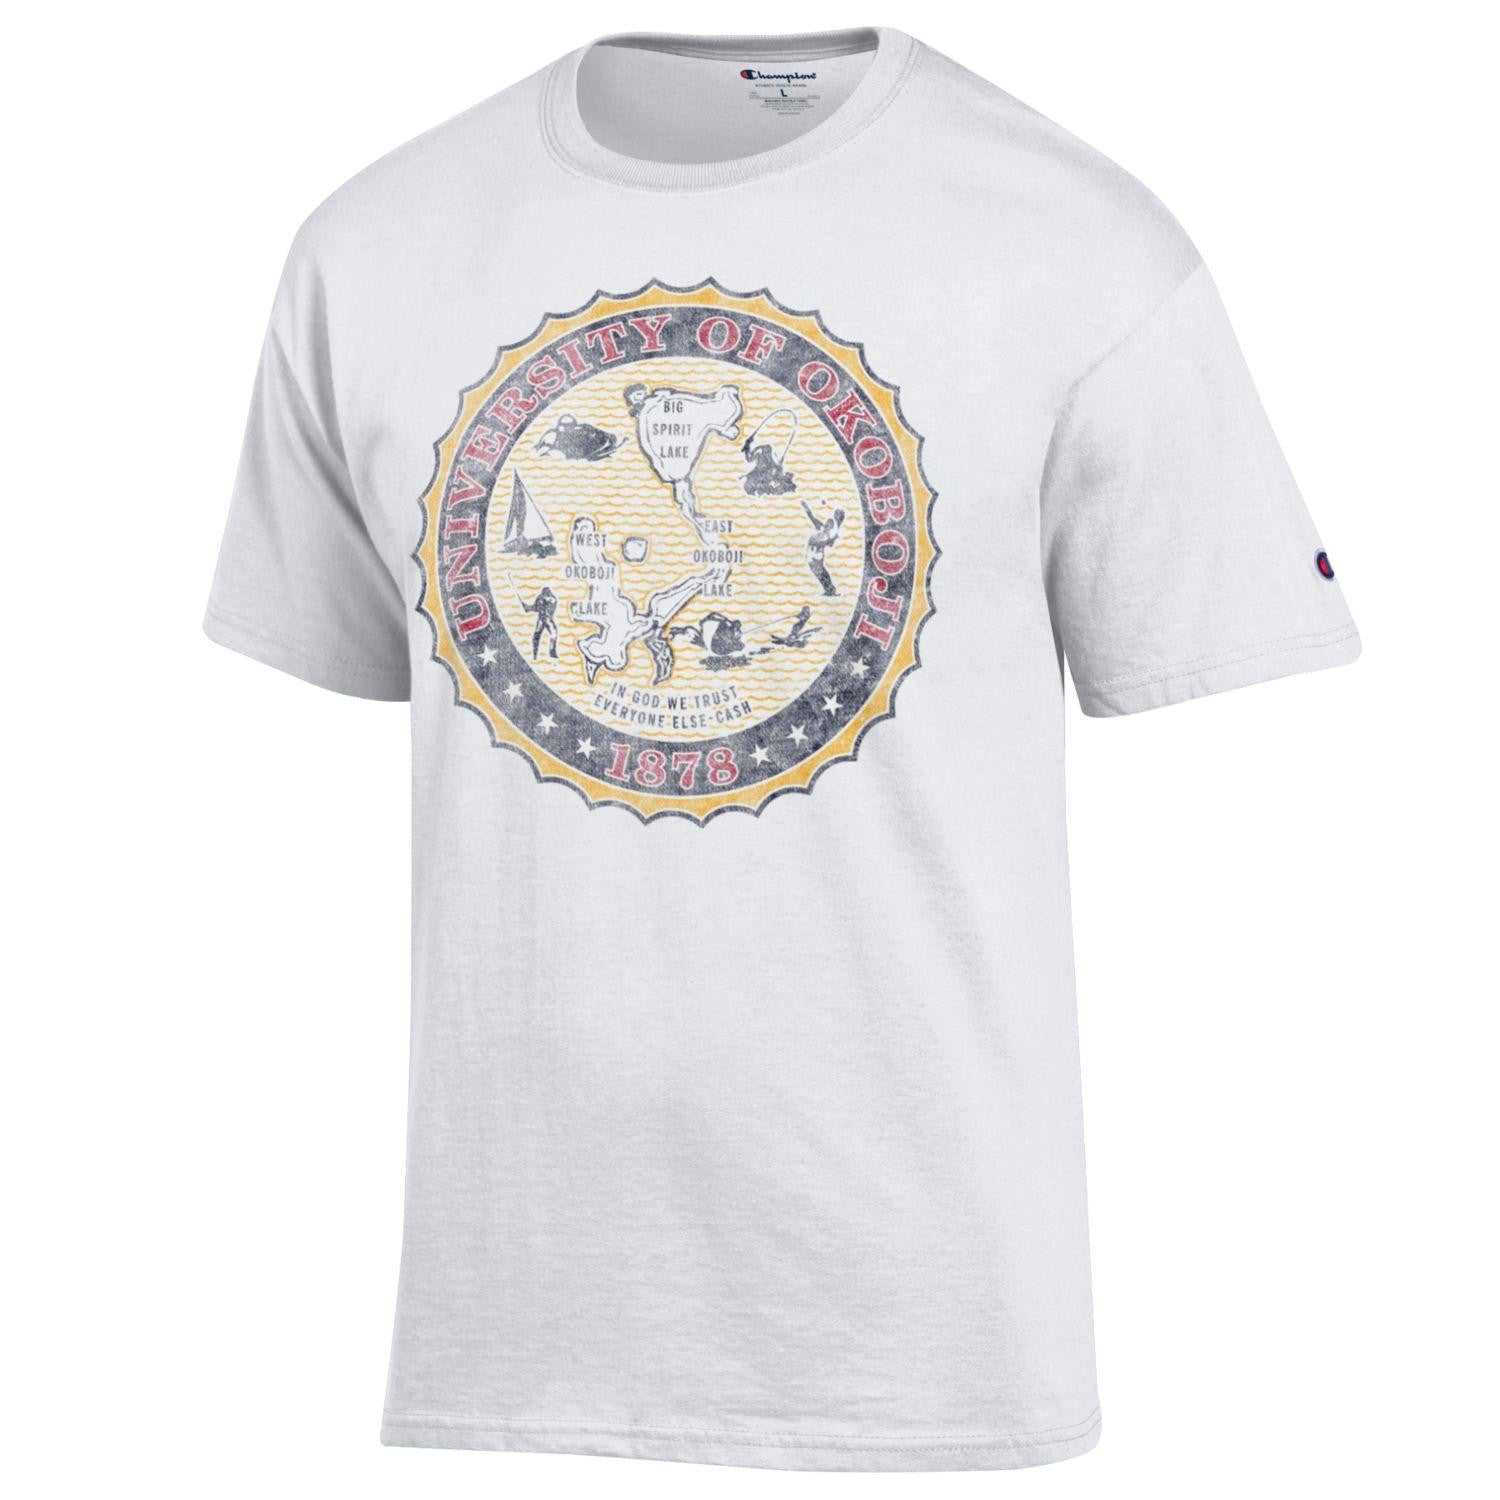 Retro Full Color Crest Tee - White